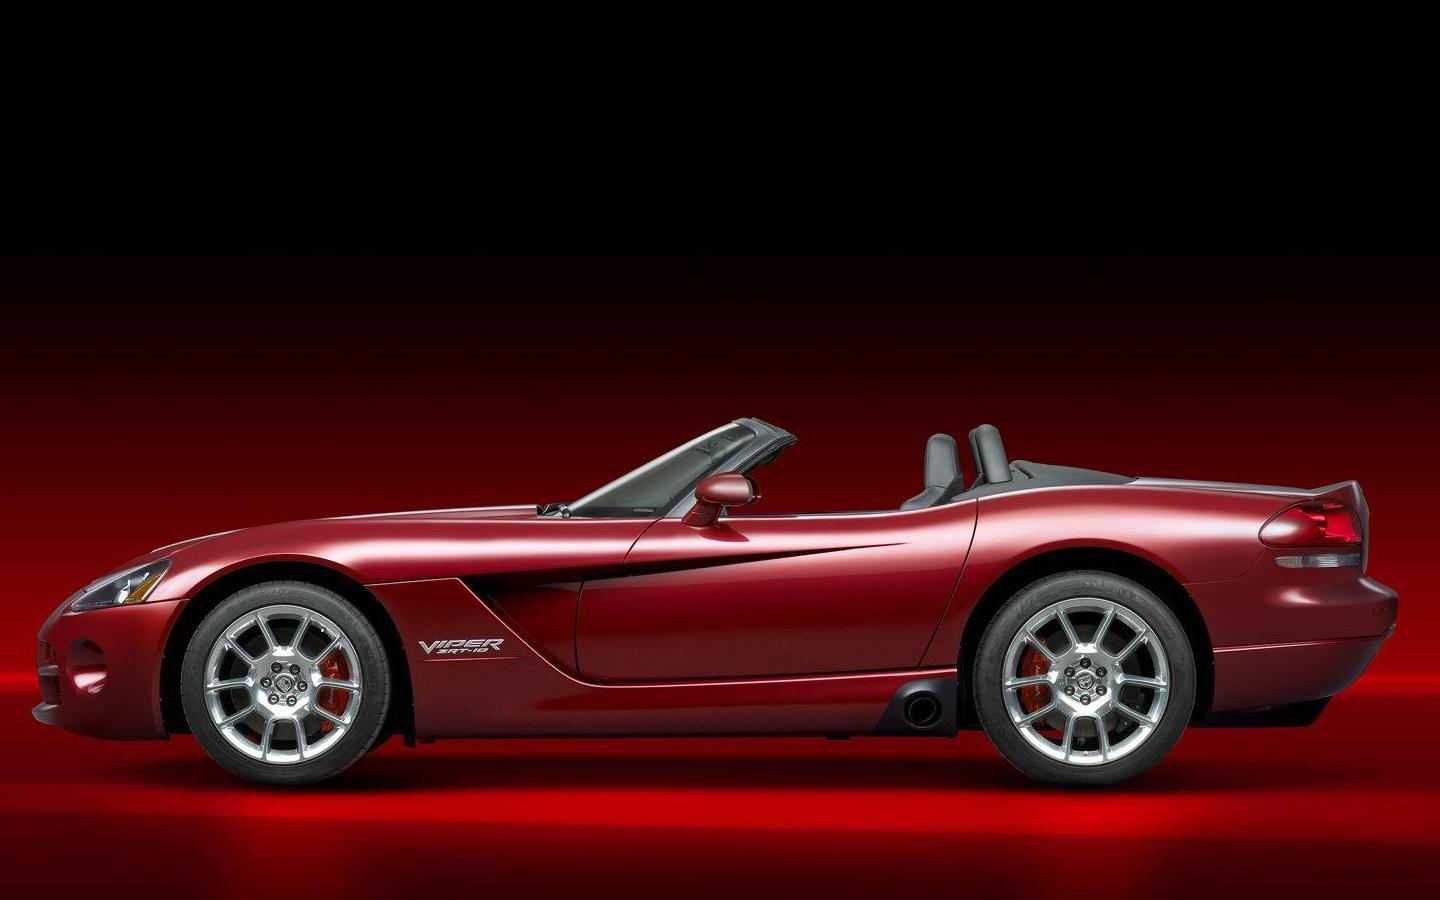 Dodge Viper Srt10 2008 1600×1200 Wallpaper 08